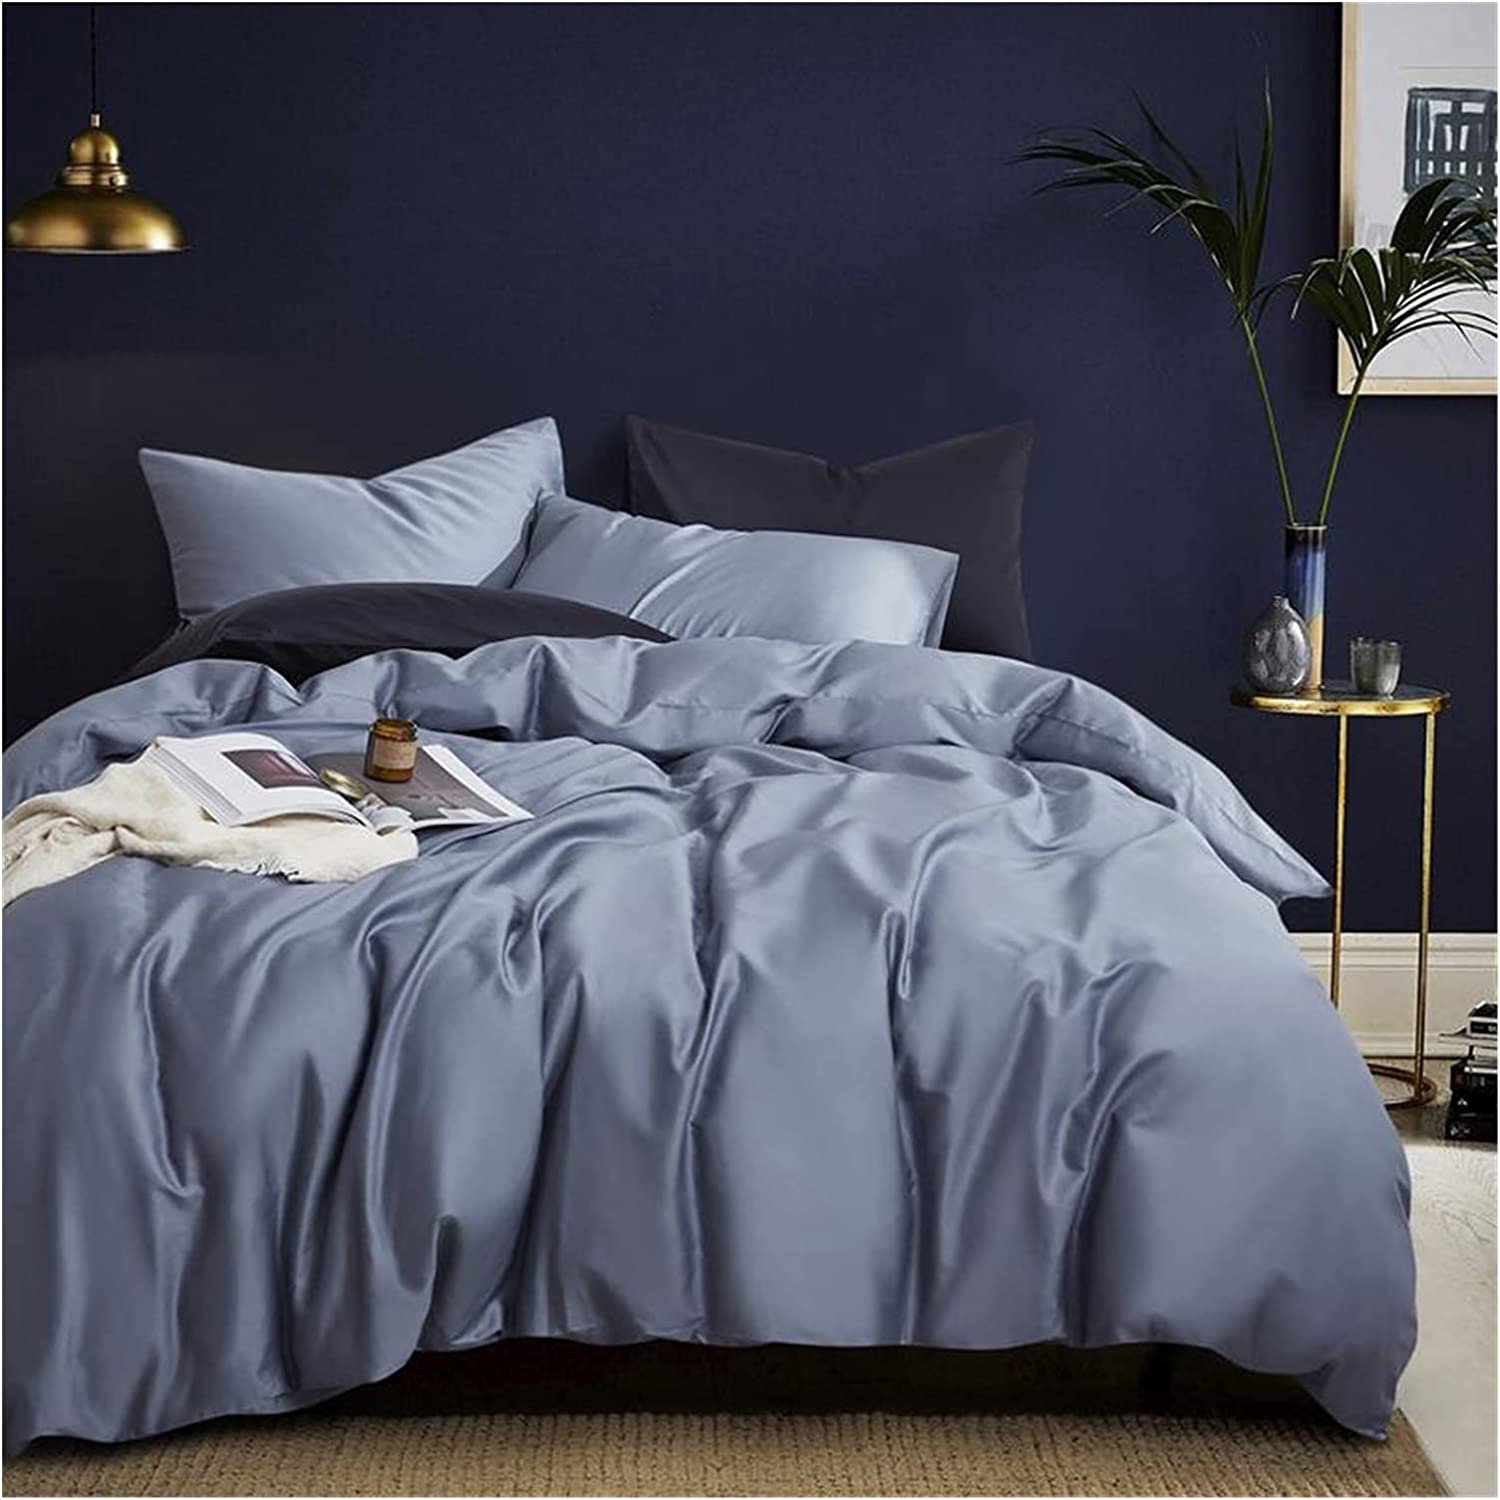 GT.S Silky Soft Pure Egyptian Cotton Color Set Fam Solid Cheap bargain List price Bedding